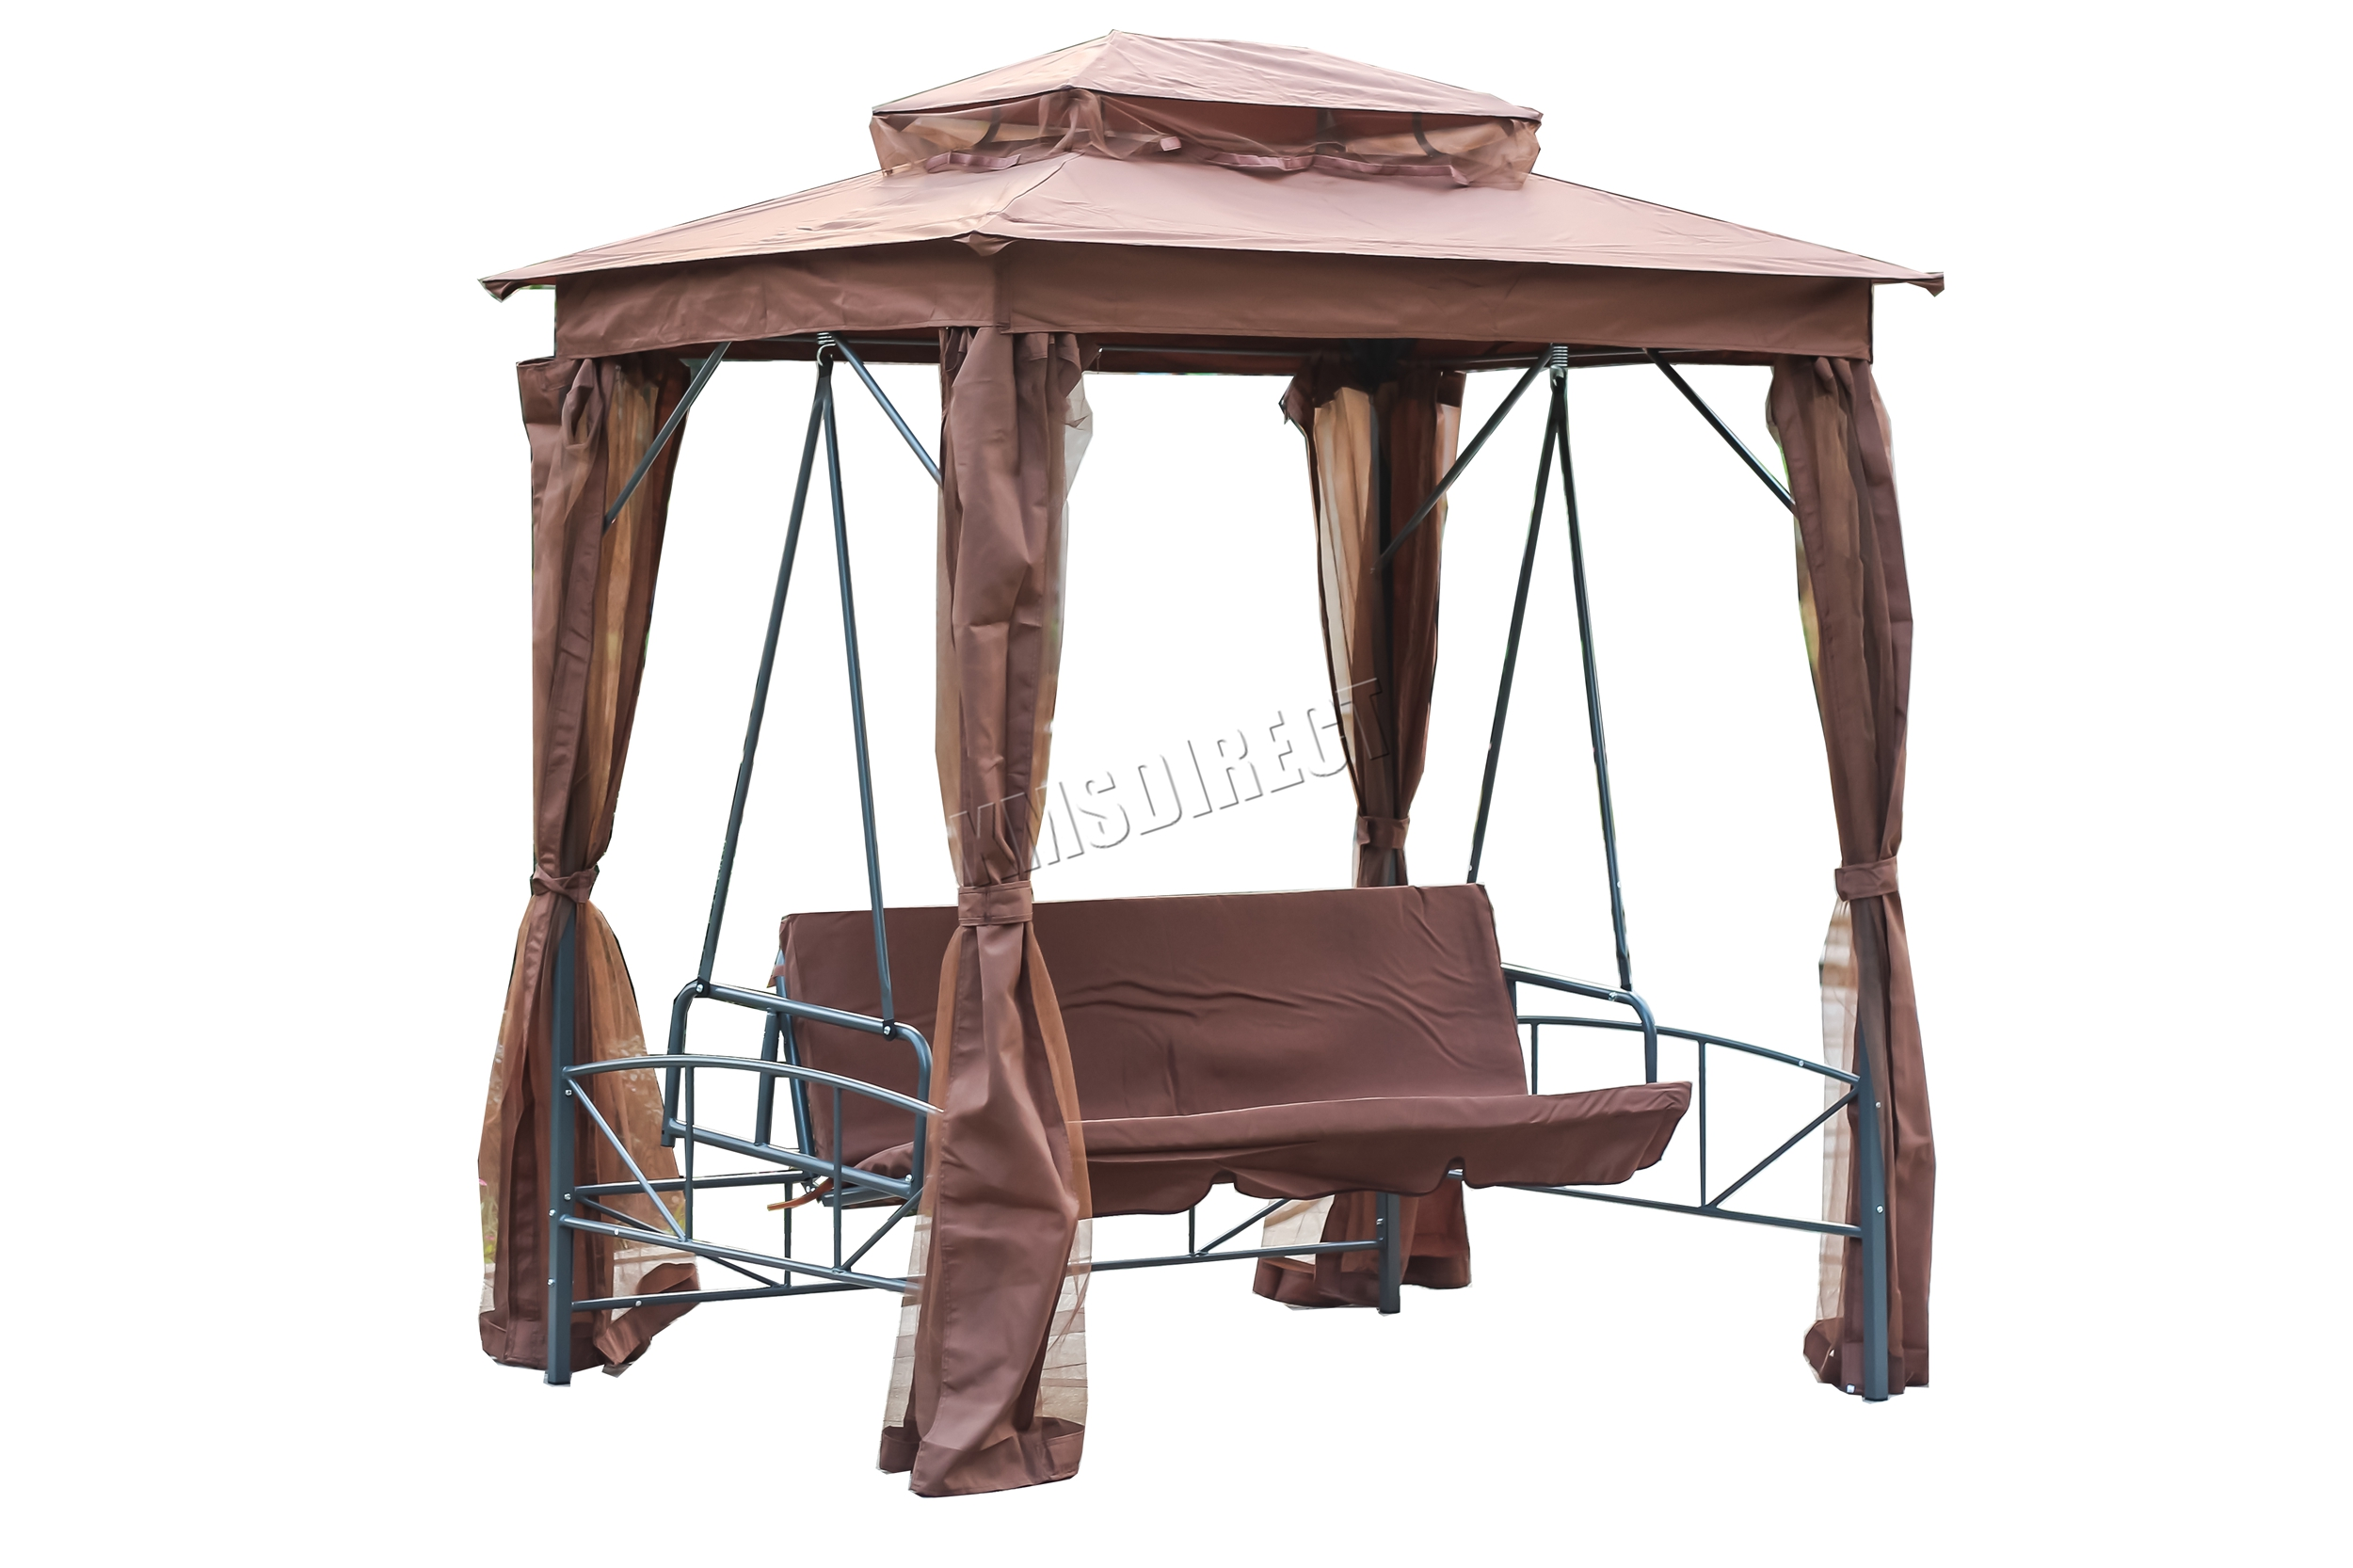 itm sentinel bed bench westwood gazebo brown hammock chair swing garden seat canopy